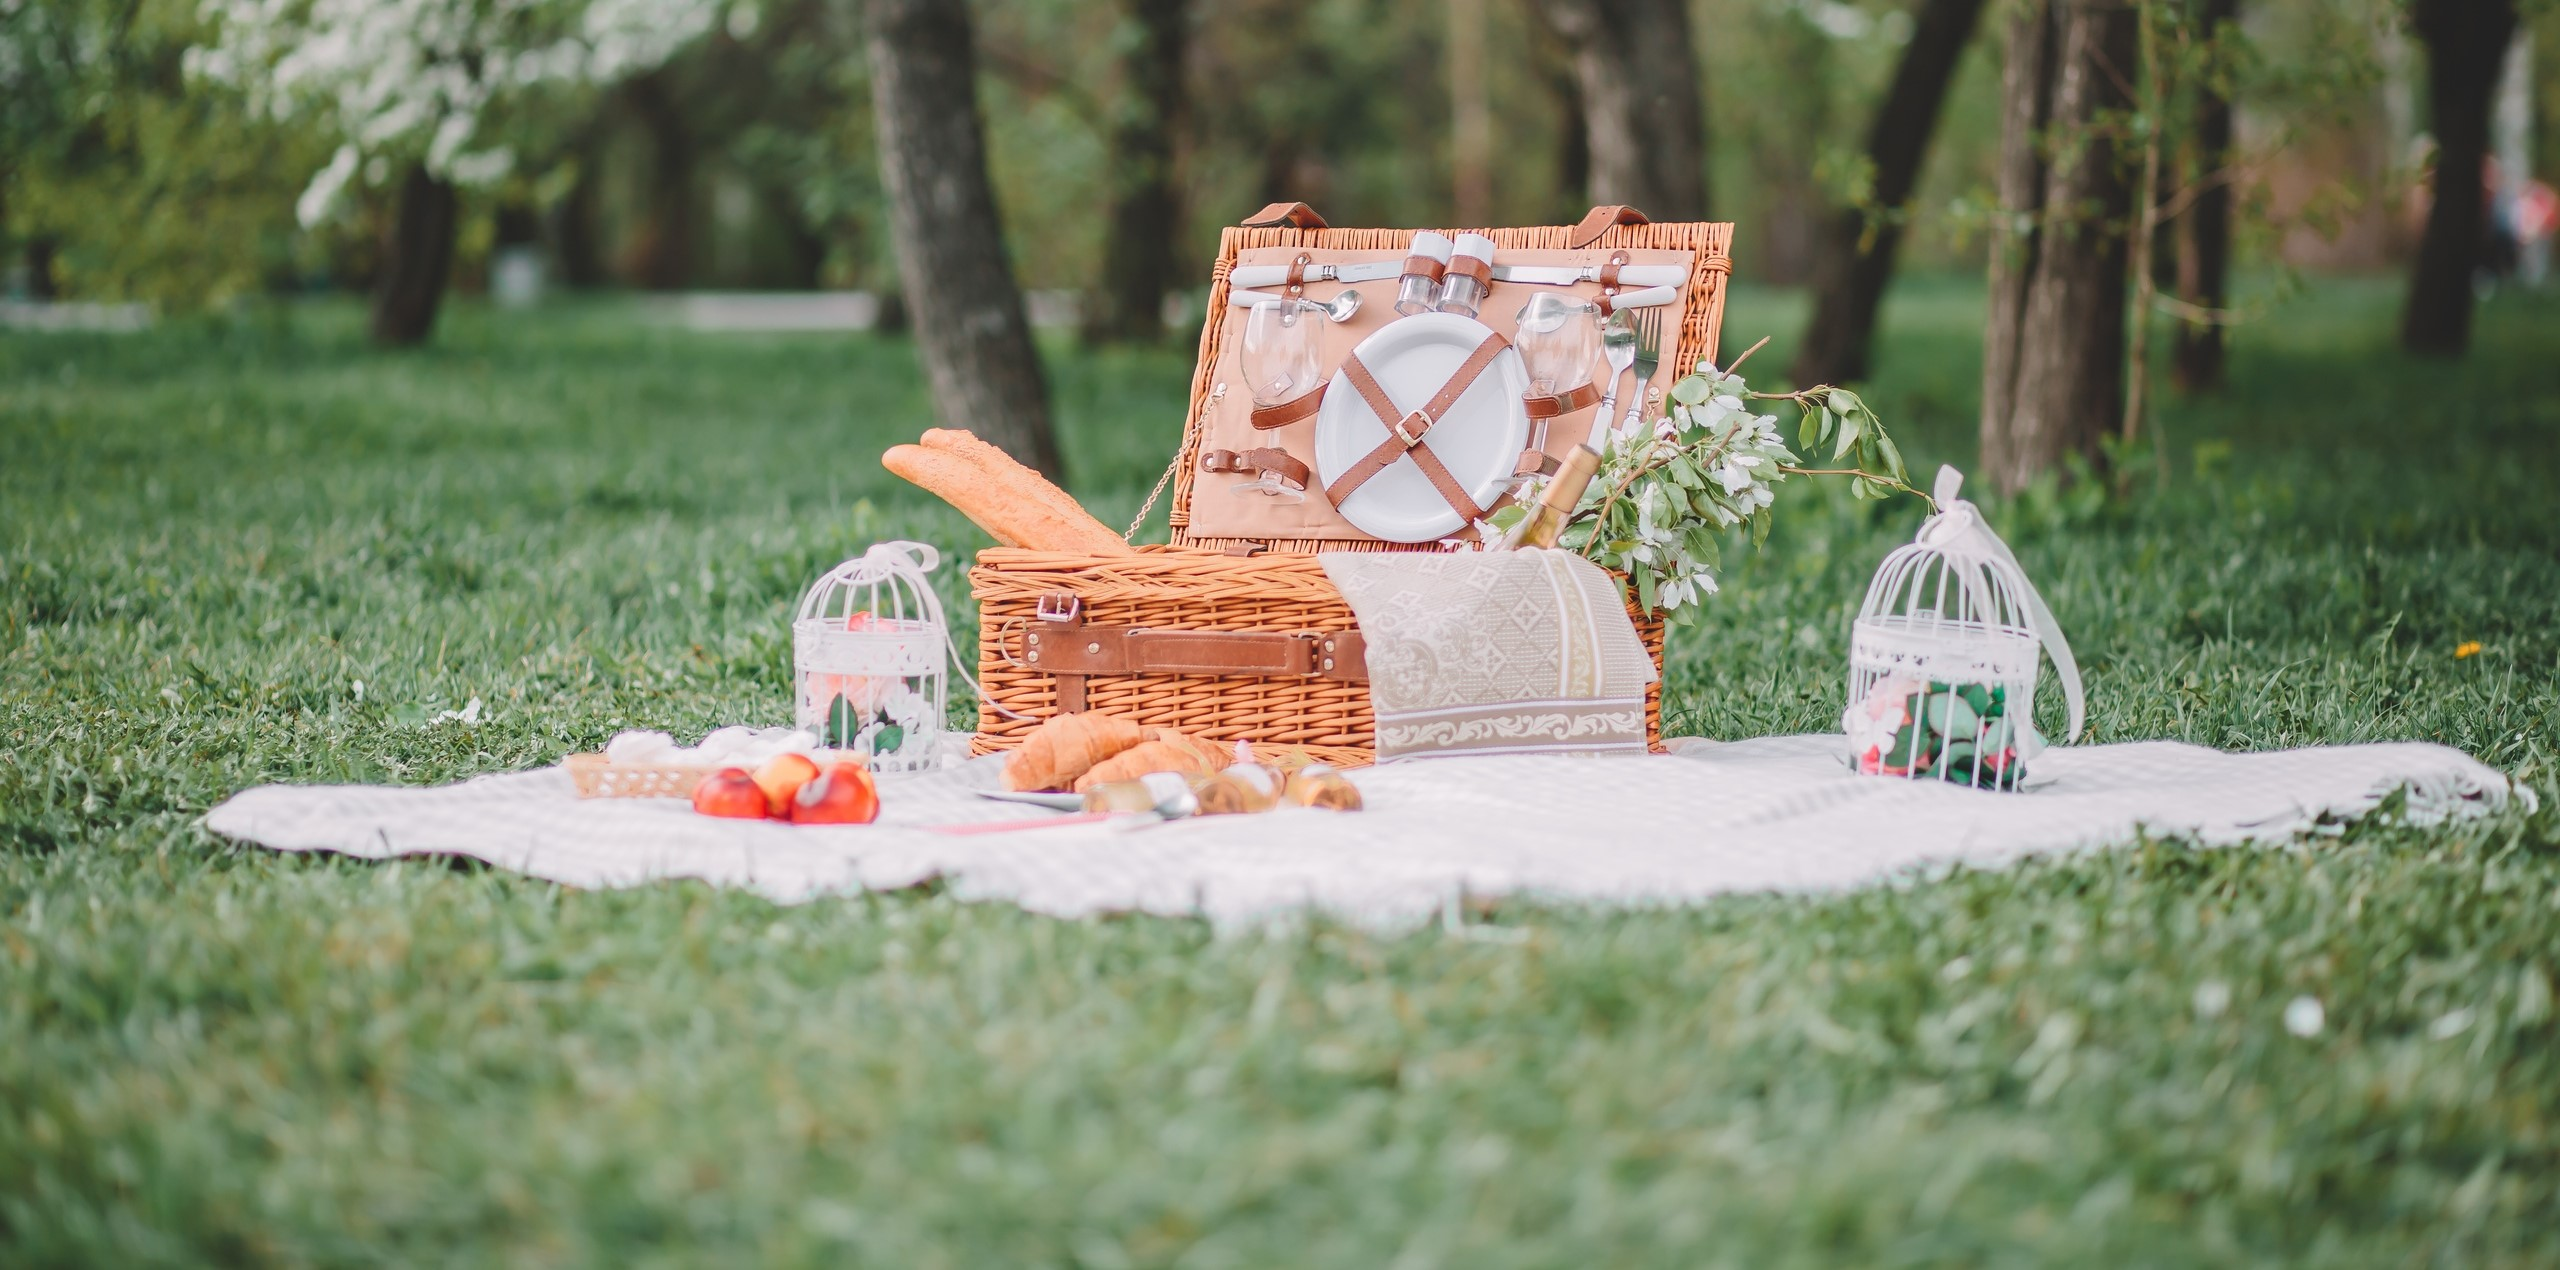 a cozy picnic in nature, in the park, a summer picnic cropped